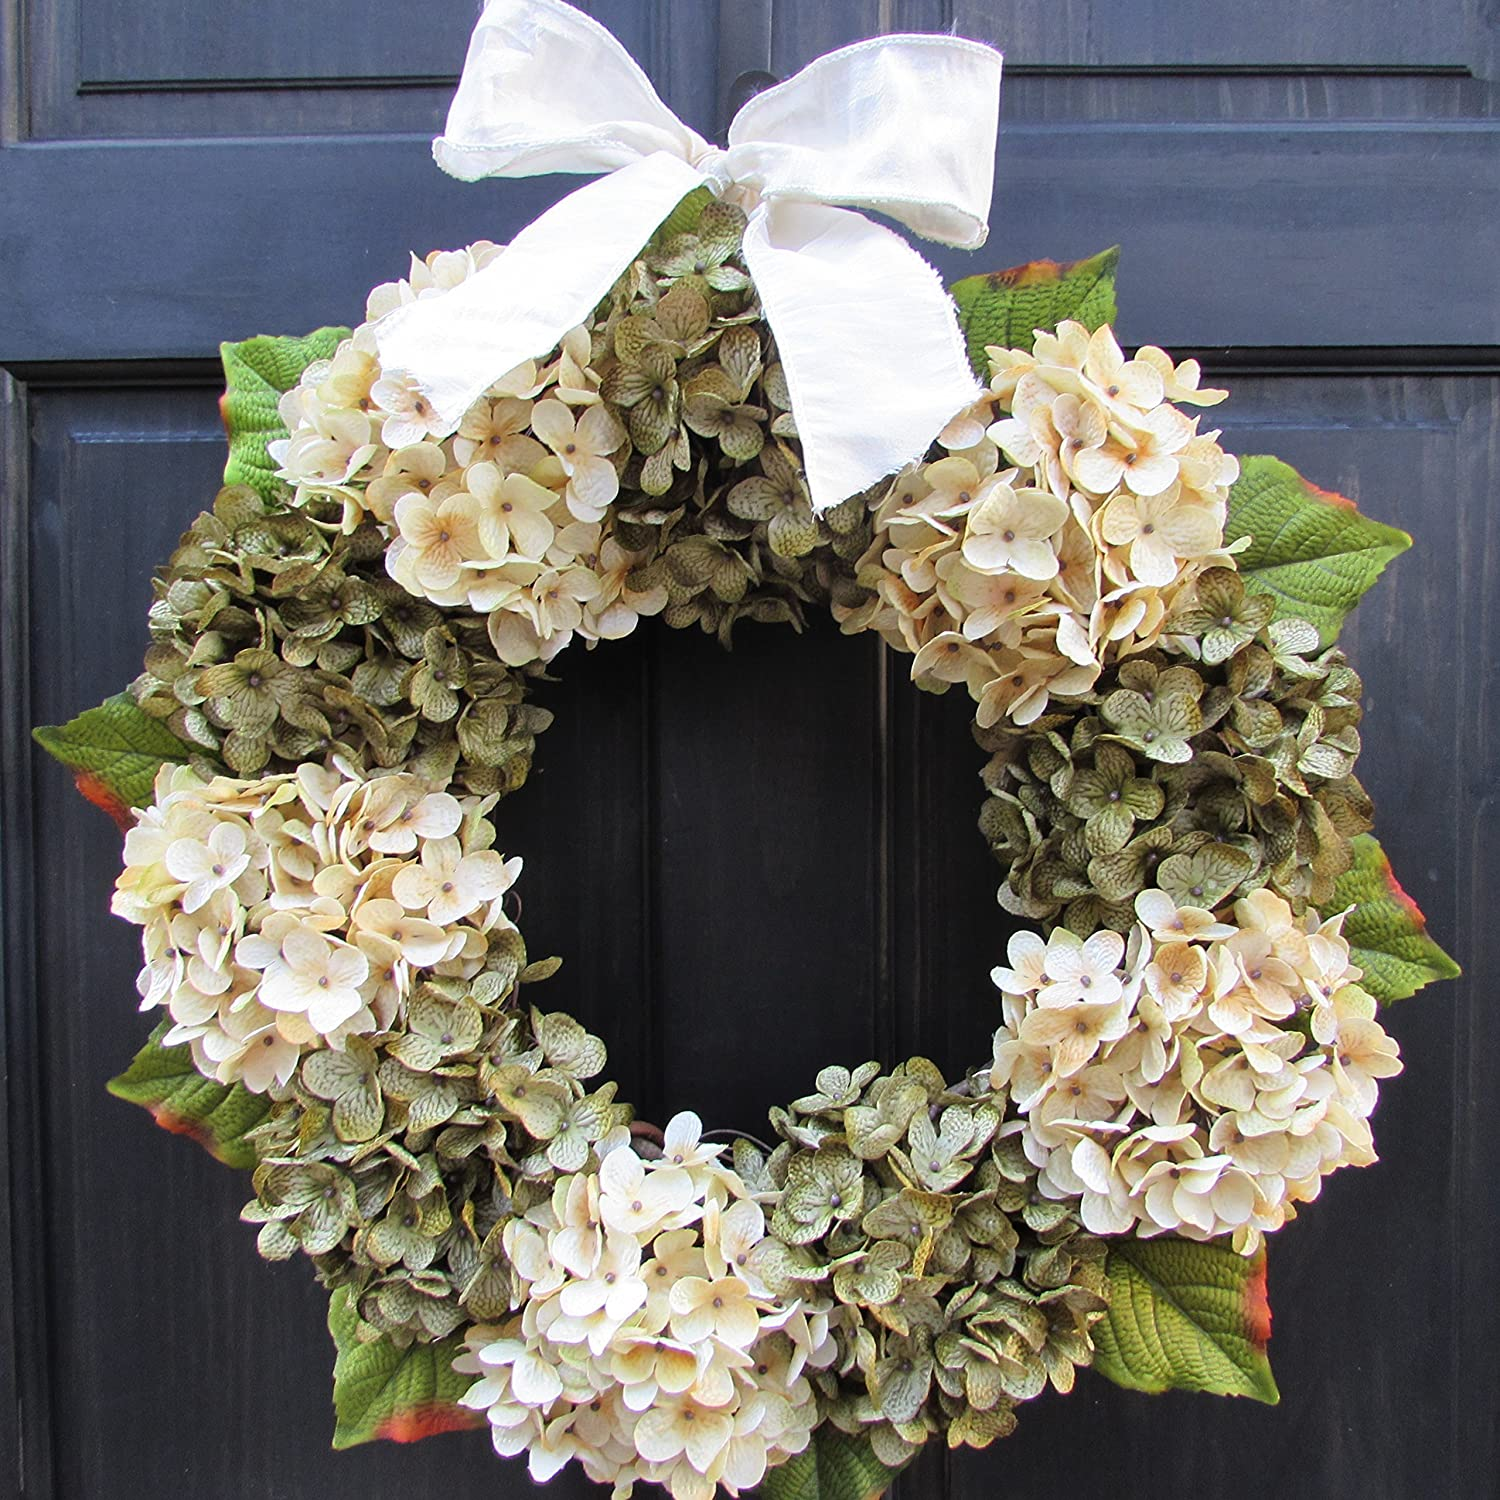 Year Round Hydrangea Wreath for Fall Winter Christmas Everyday Front Door Decor; Green and Cream; Small - Extra Large Sizes